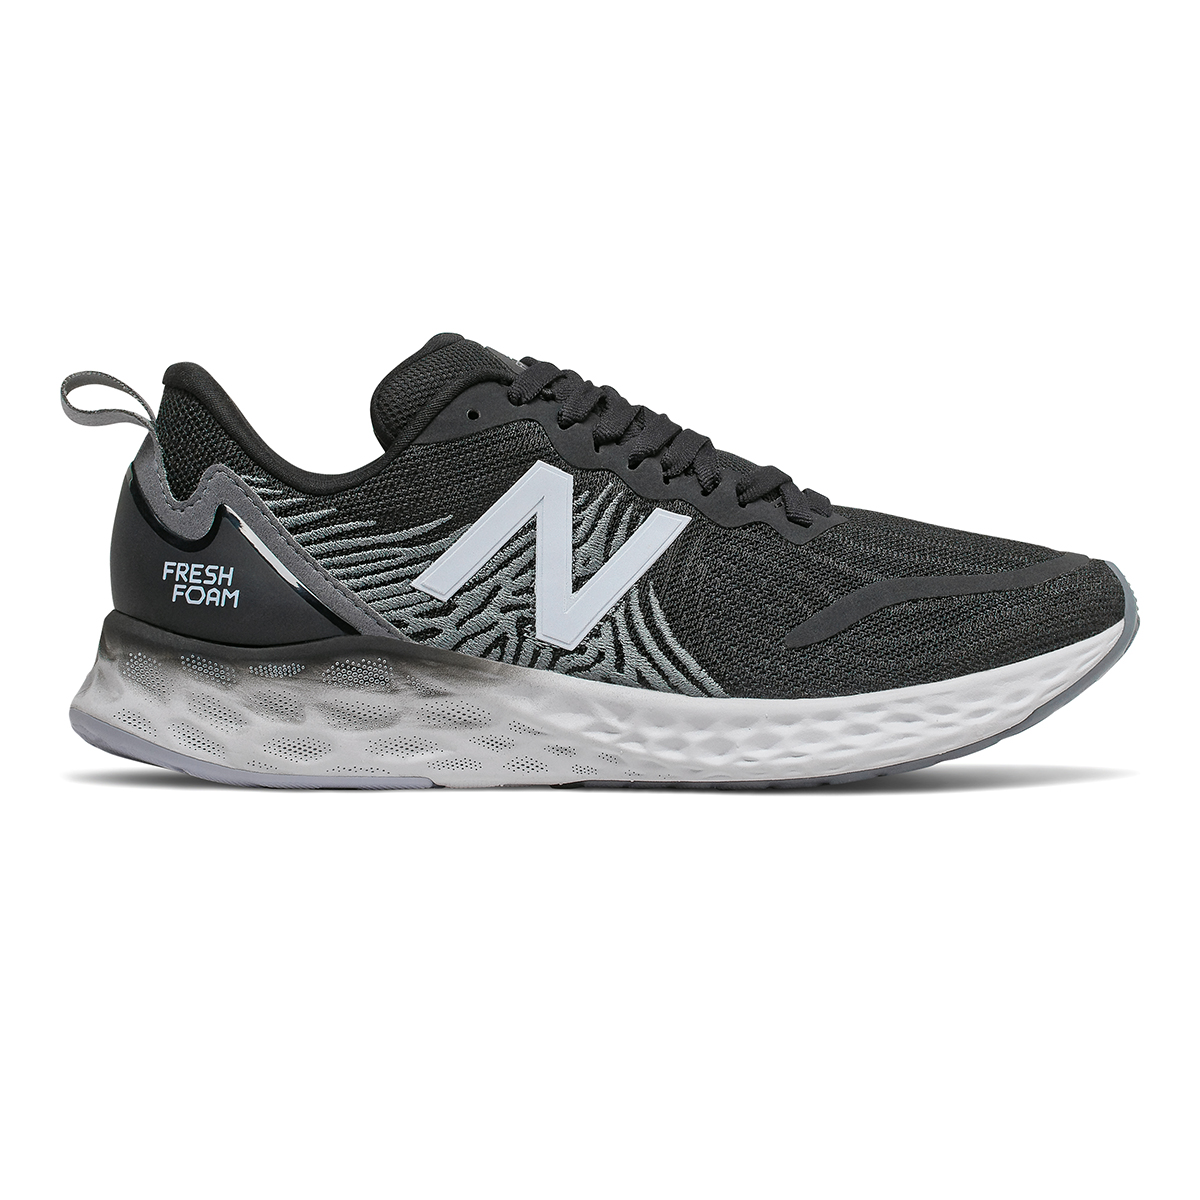 Women's New Balance Tempo Running Shoe - Color: Black - Size: 5 - Width: Regular, Black, large, image 1